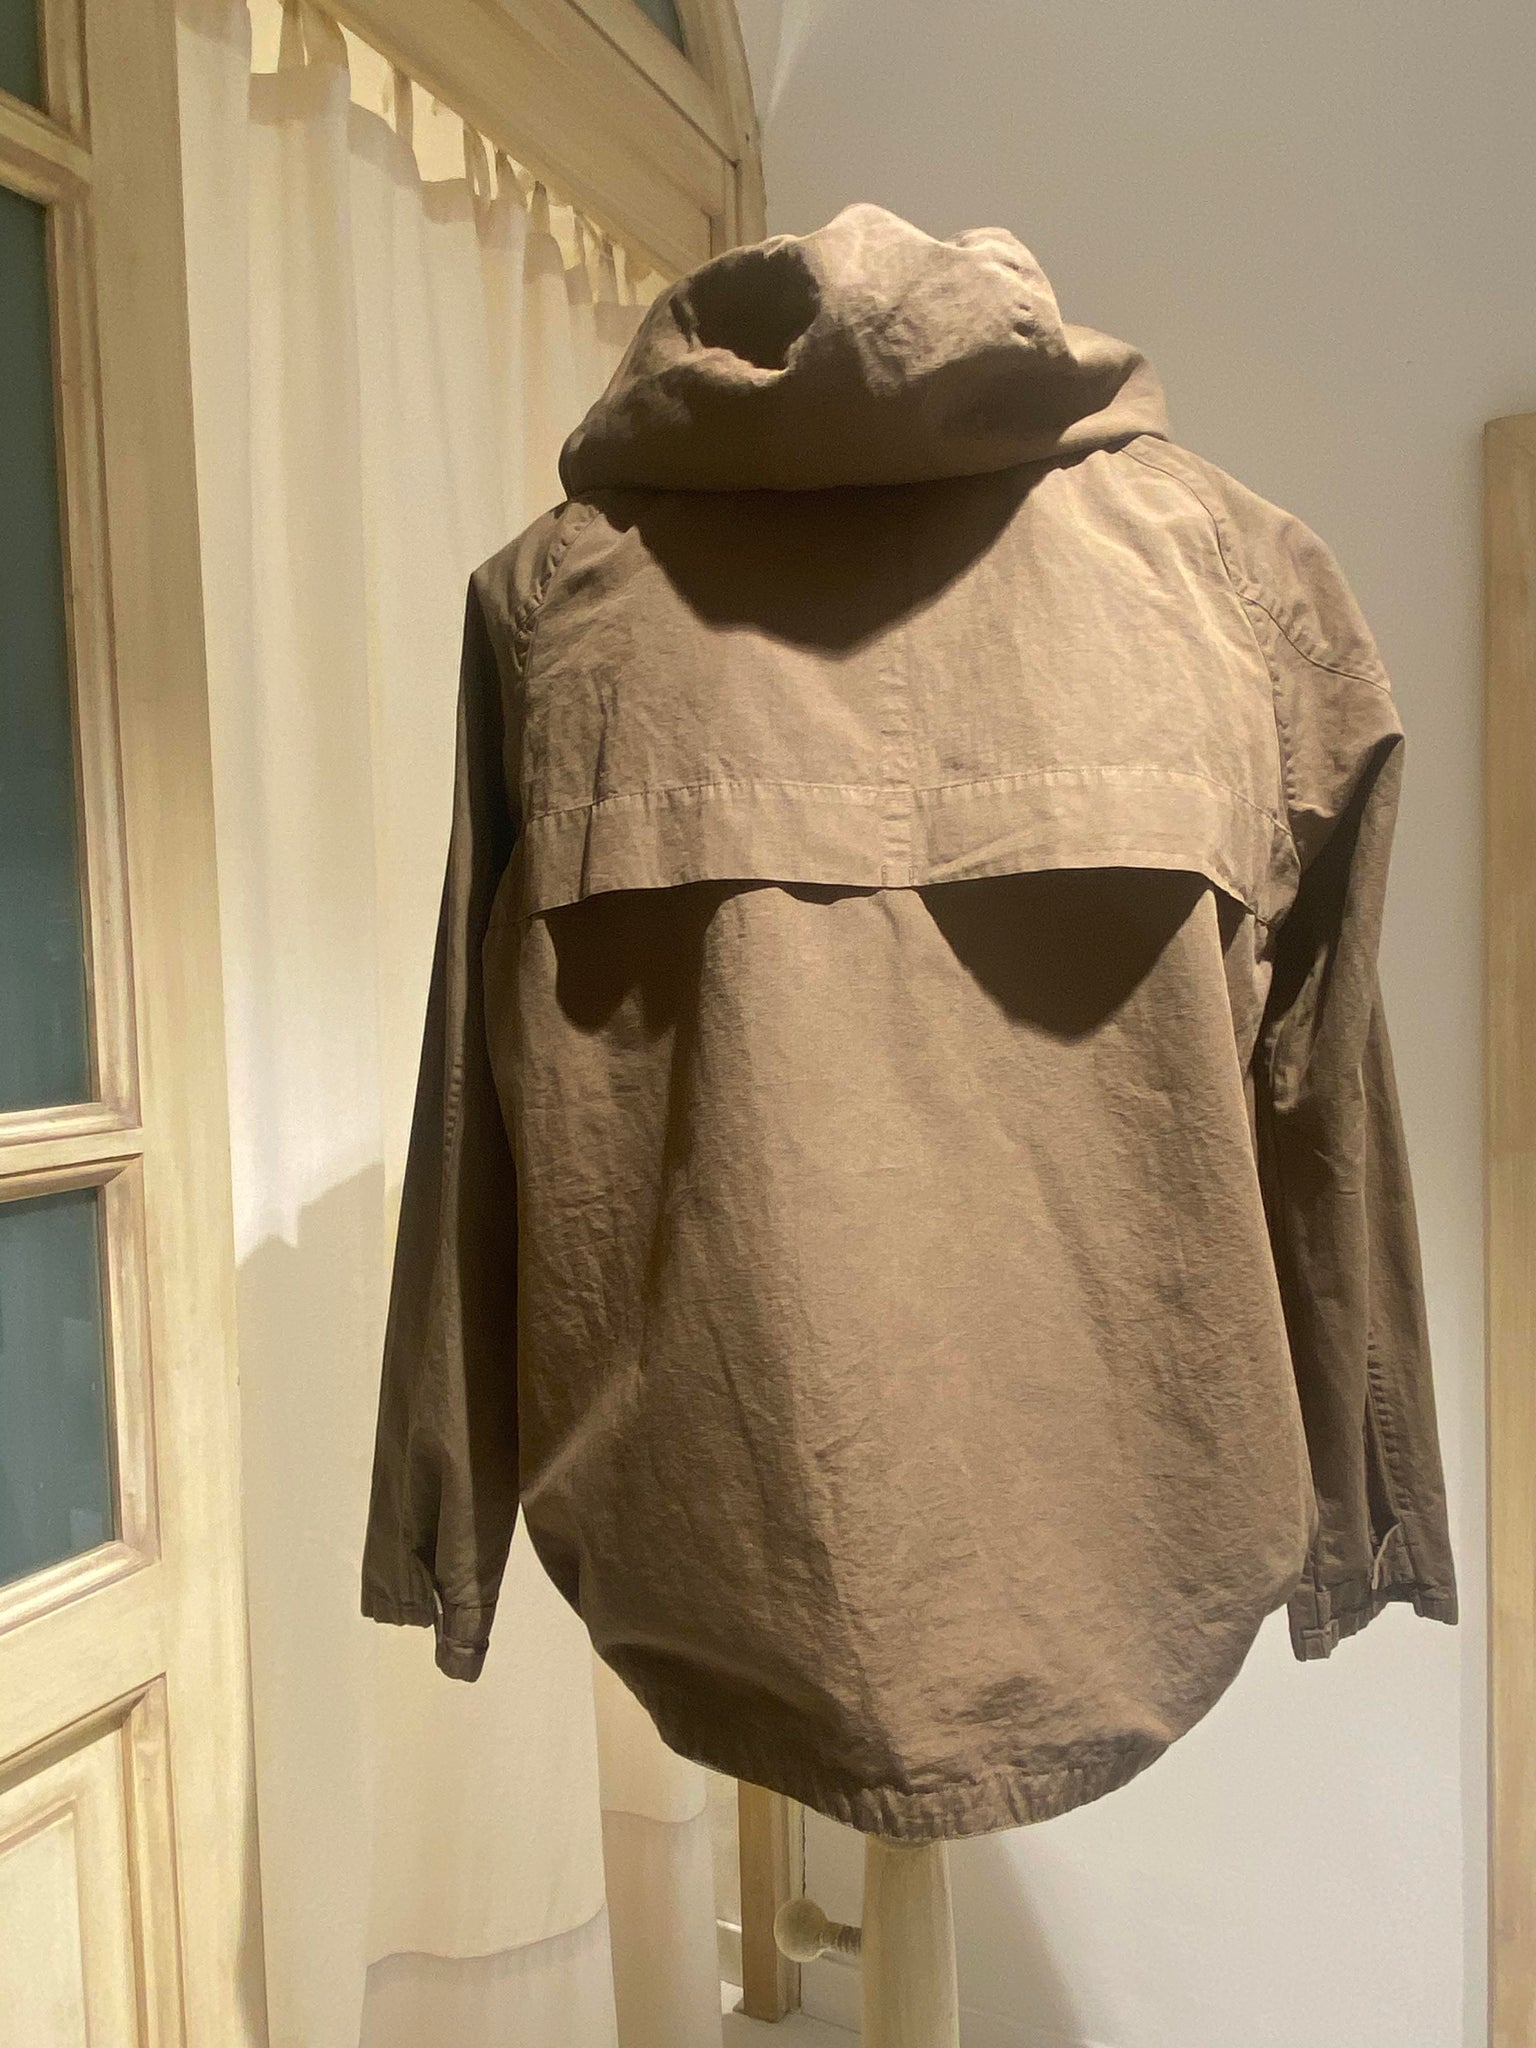 M HOODED JKT - PS PAUL SMITH - ARMY GREEN